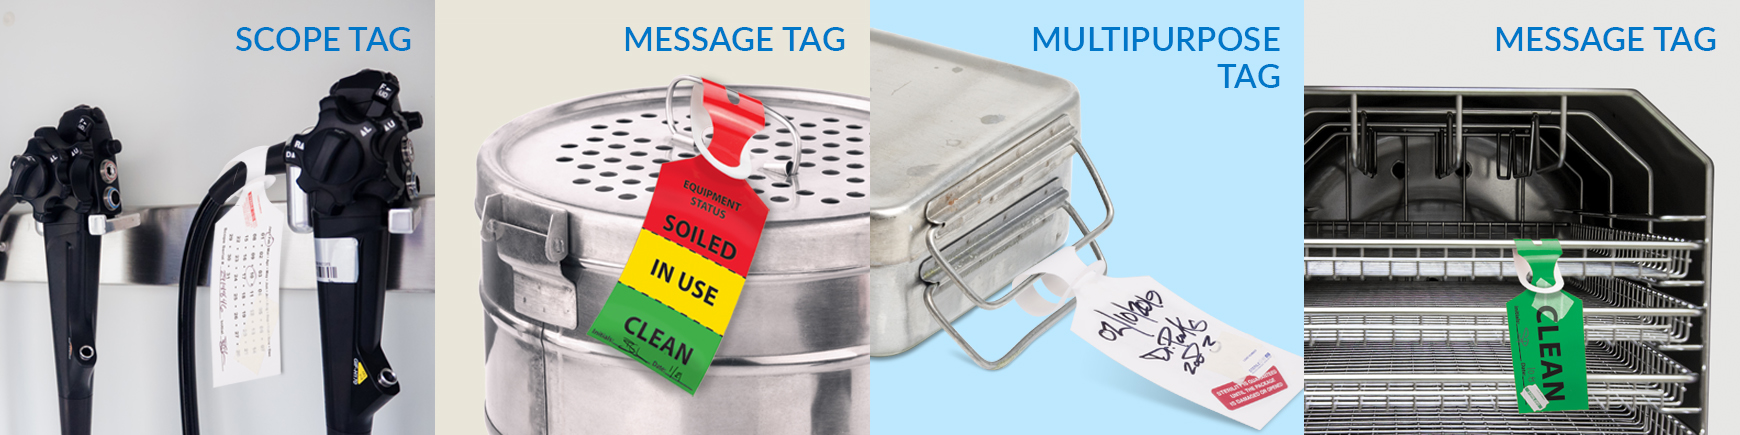 Tray & Scope Tags